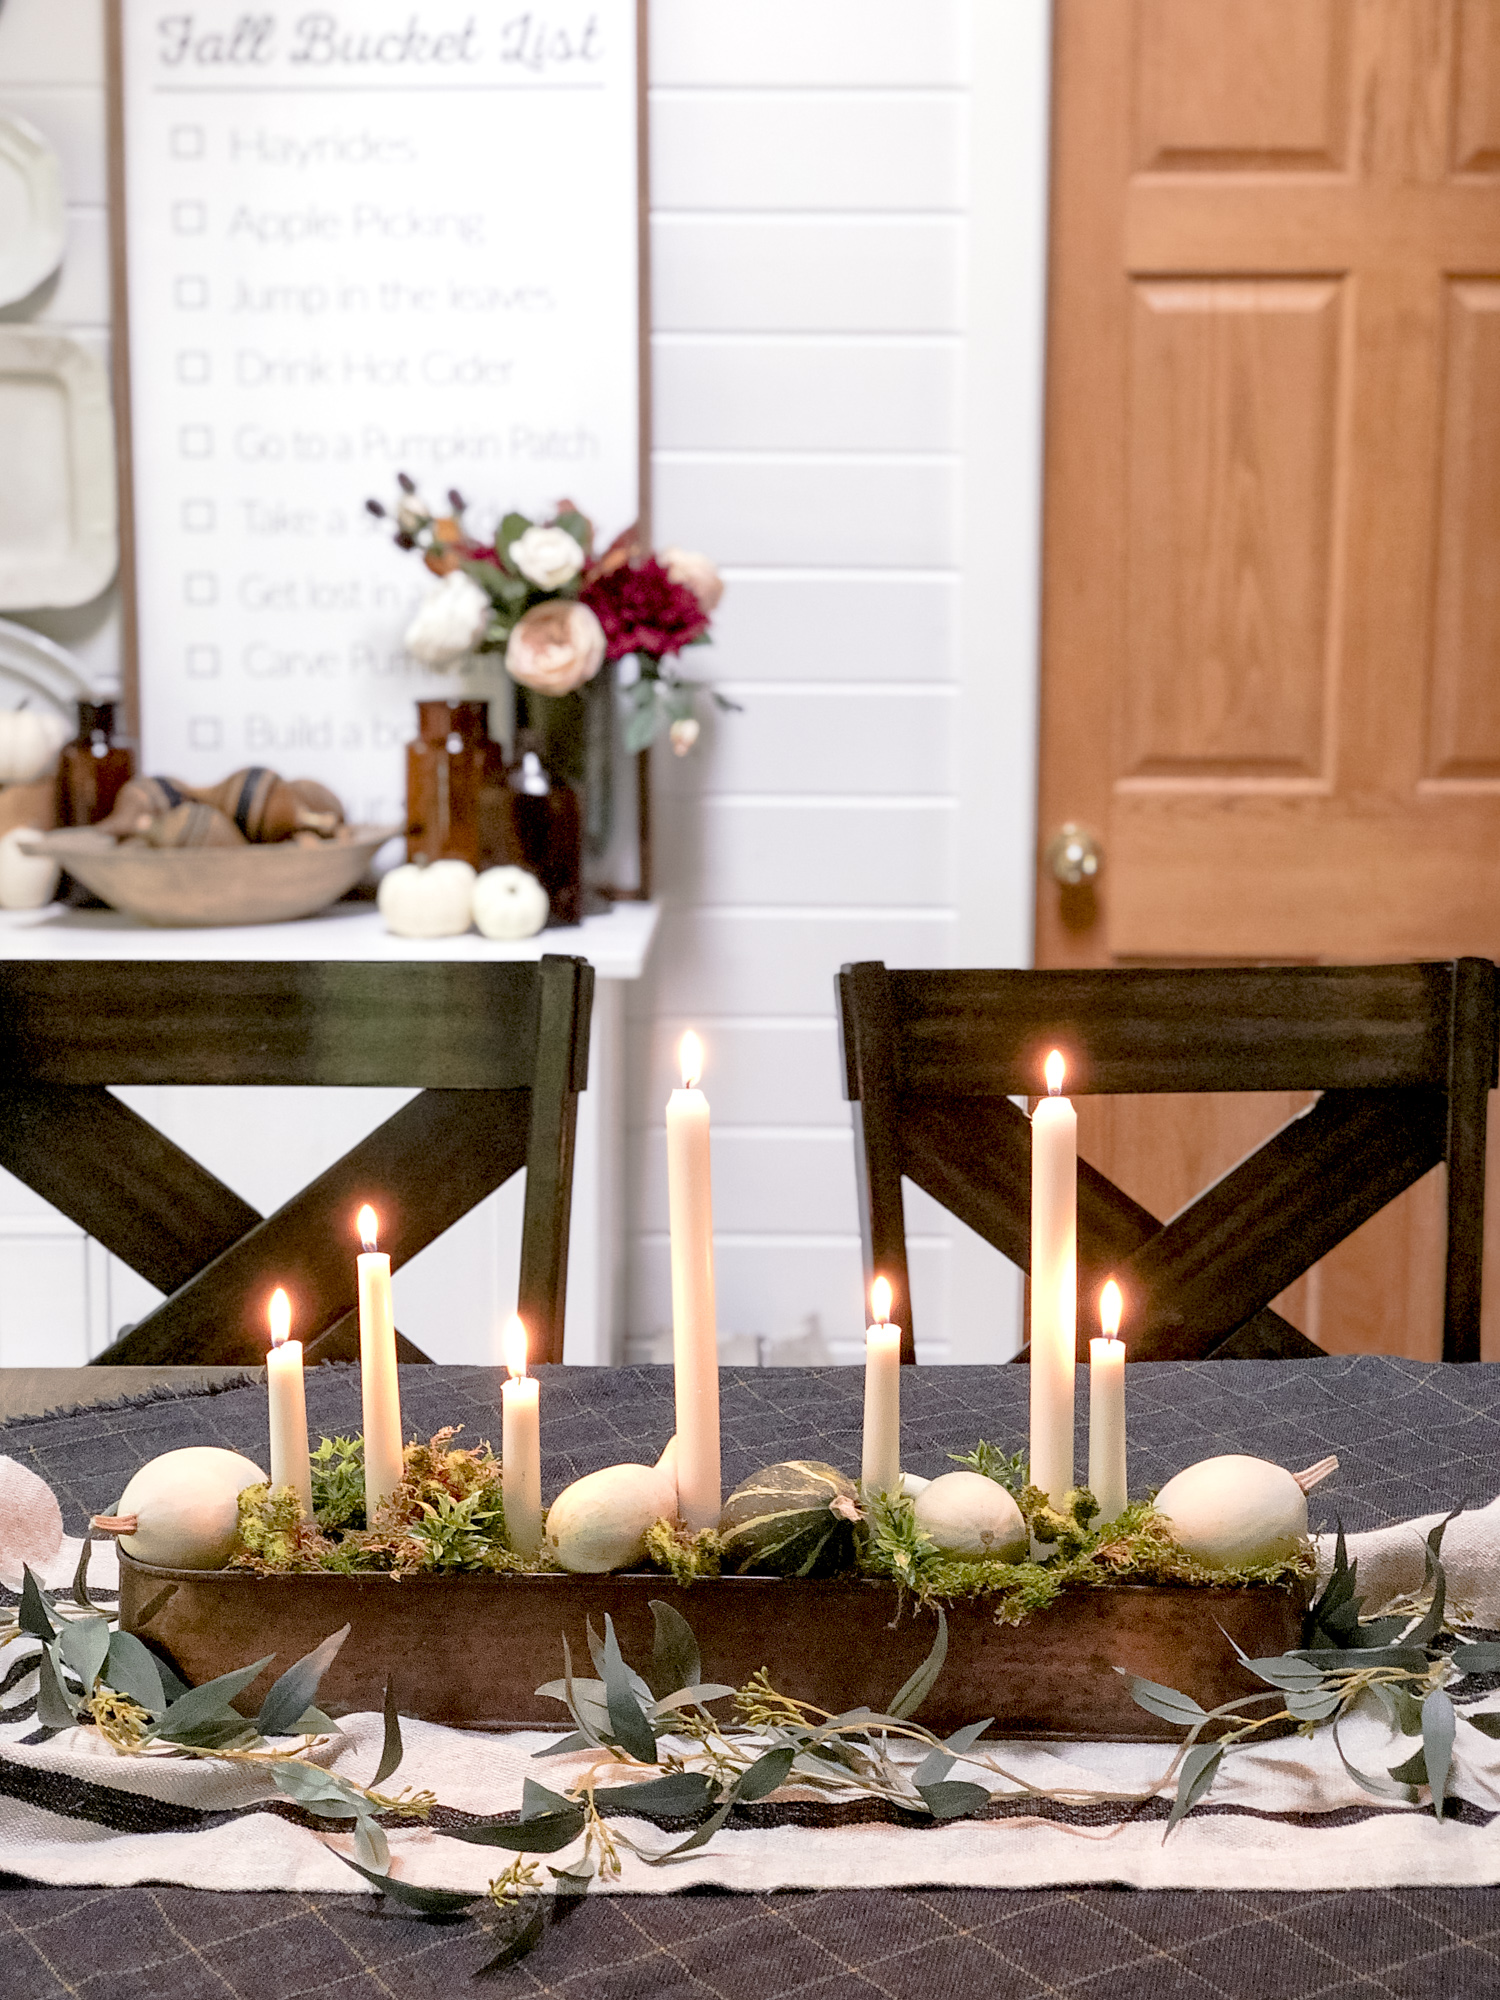 DIY candelabra decorated for fall.